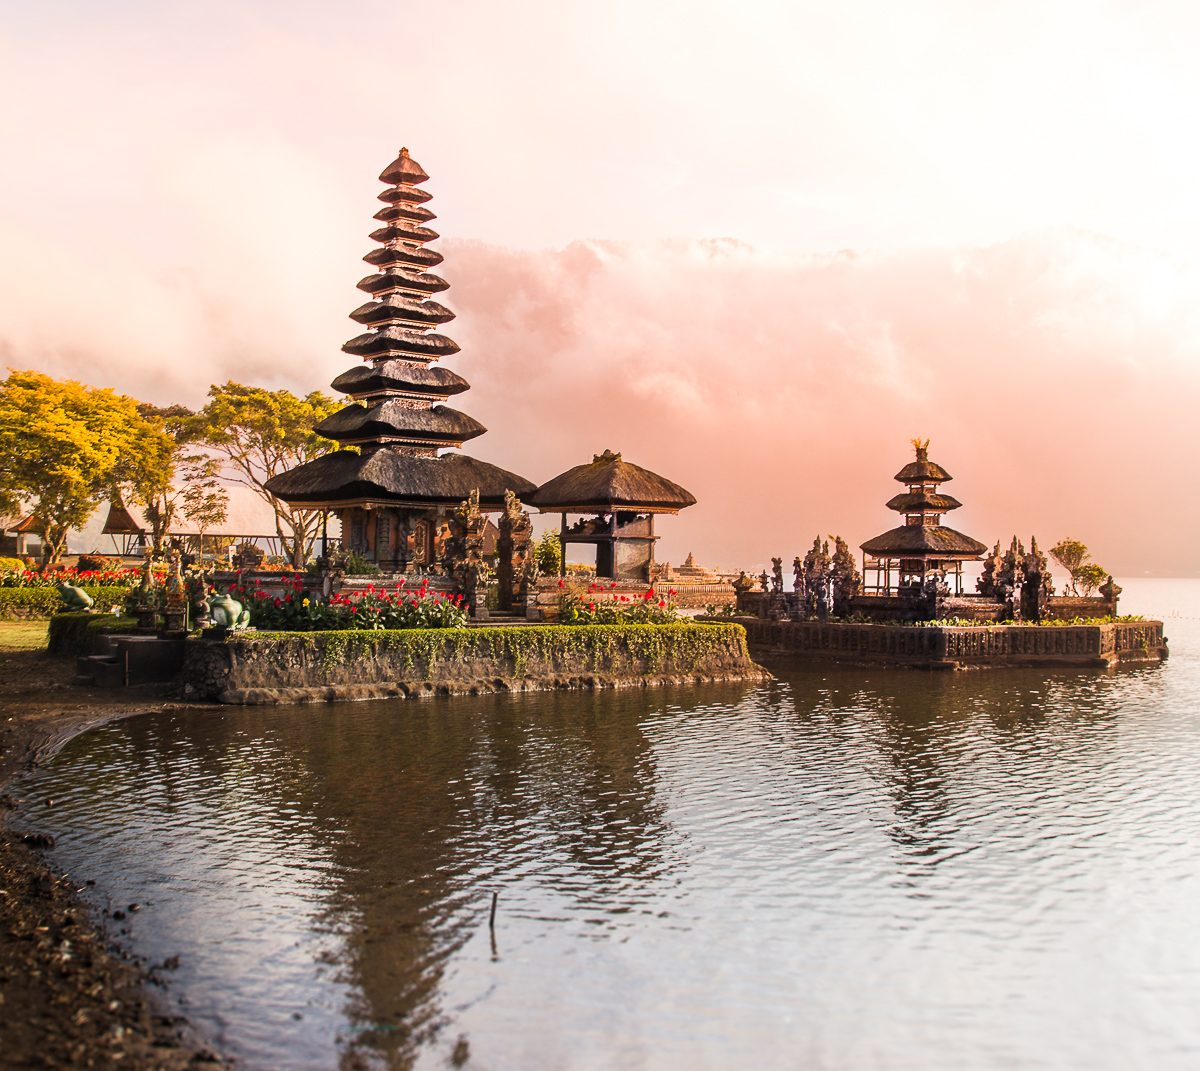 pura ulun danu beratan for sunrise omnivagant bali for first timers